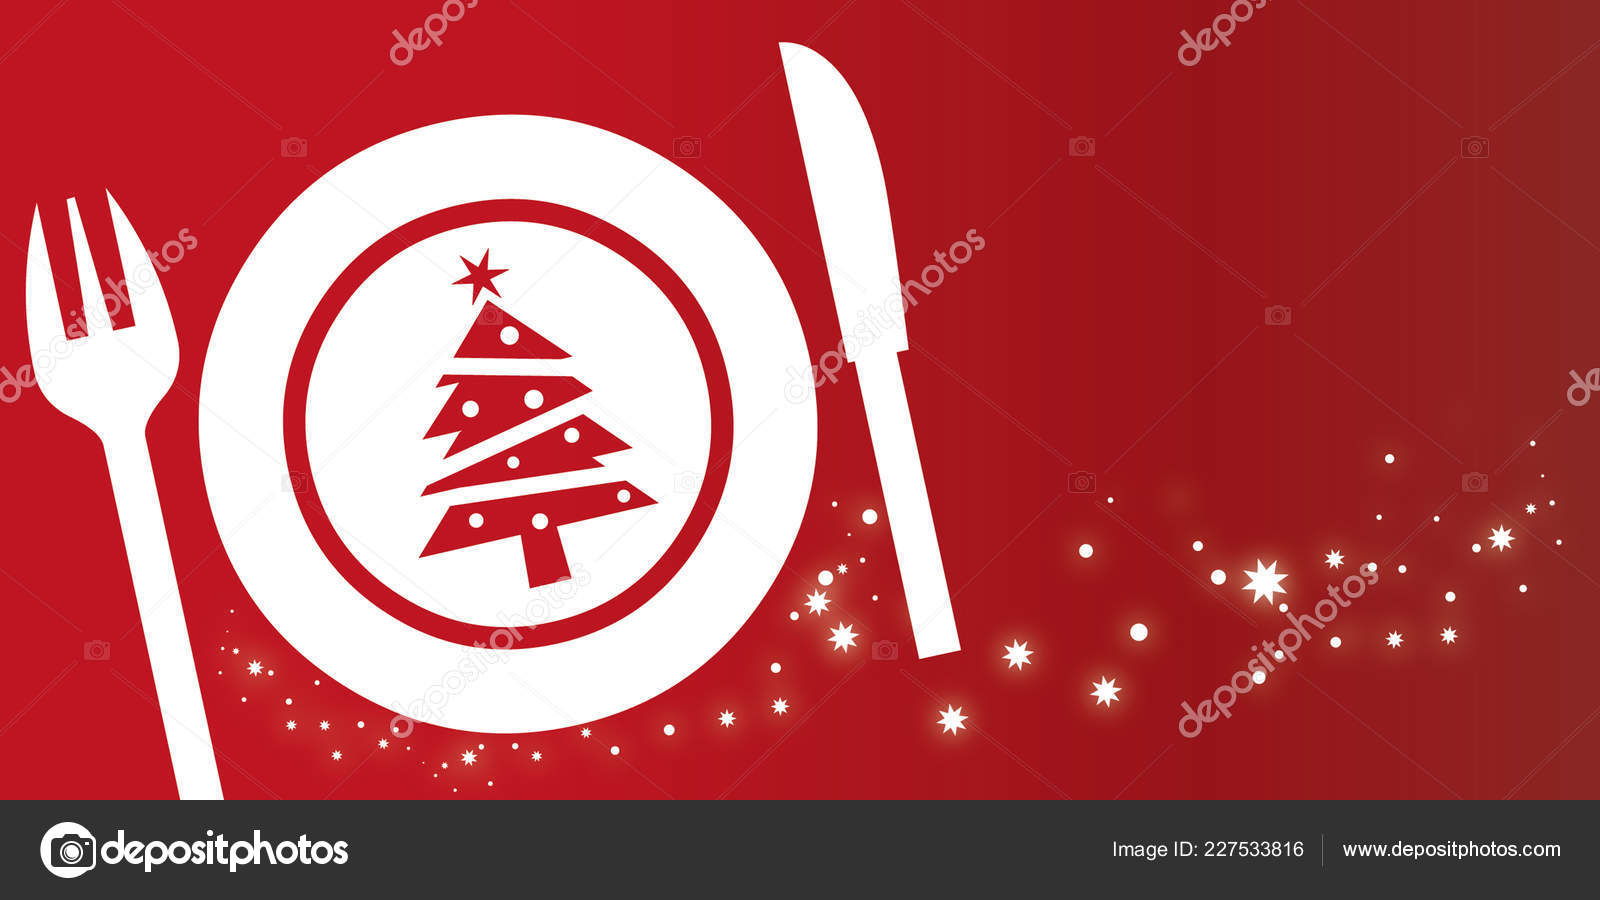 Christmas Dish Composition Red Background Glittering Stars Christmas